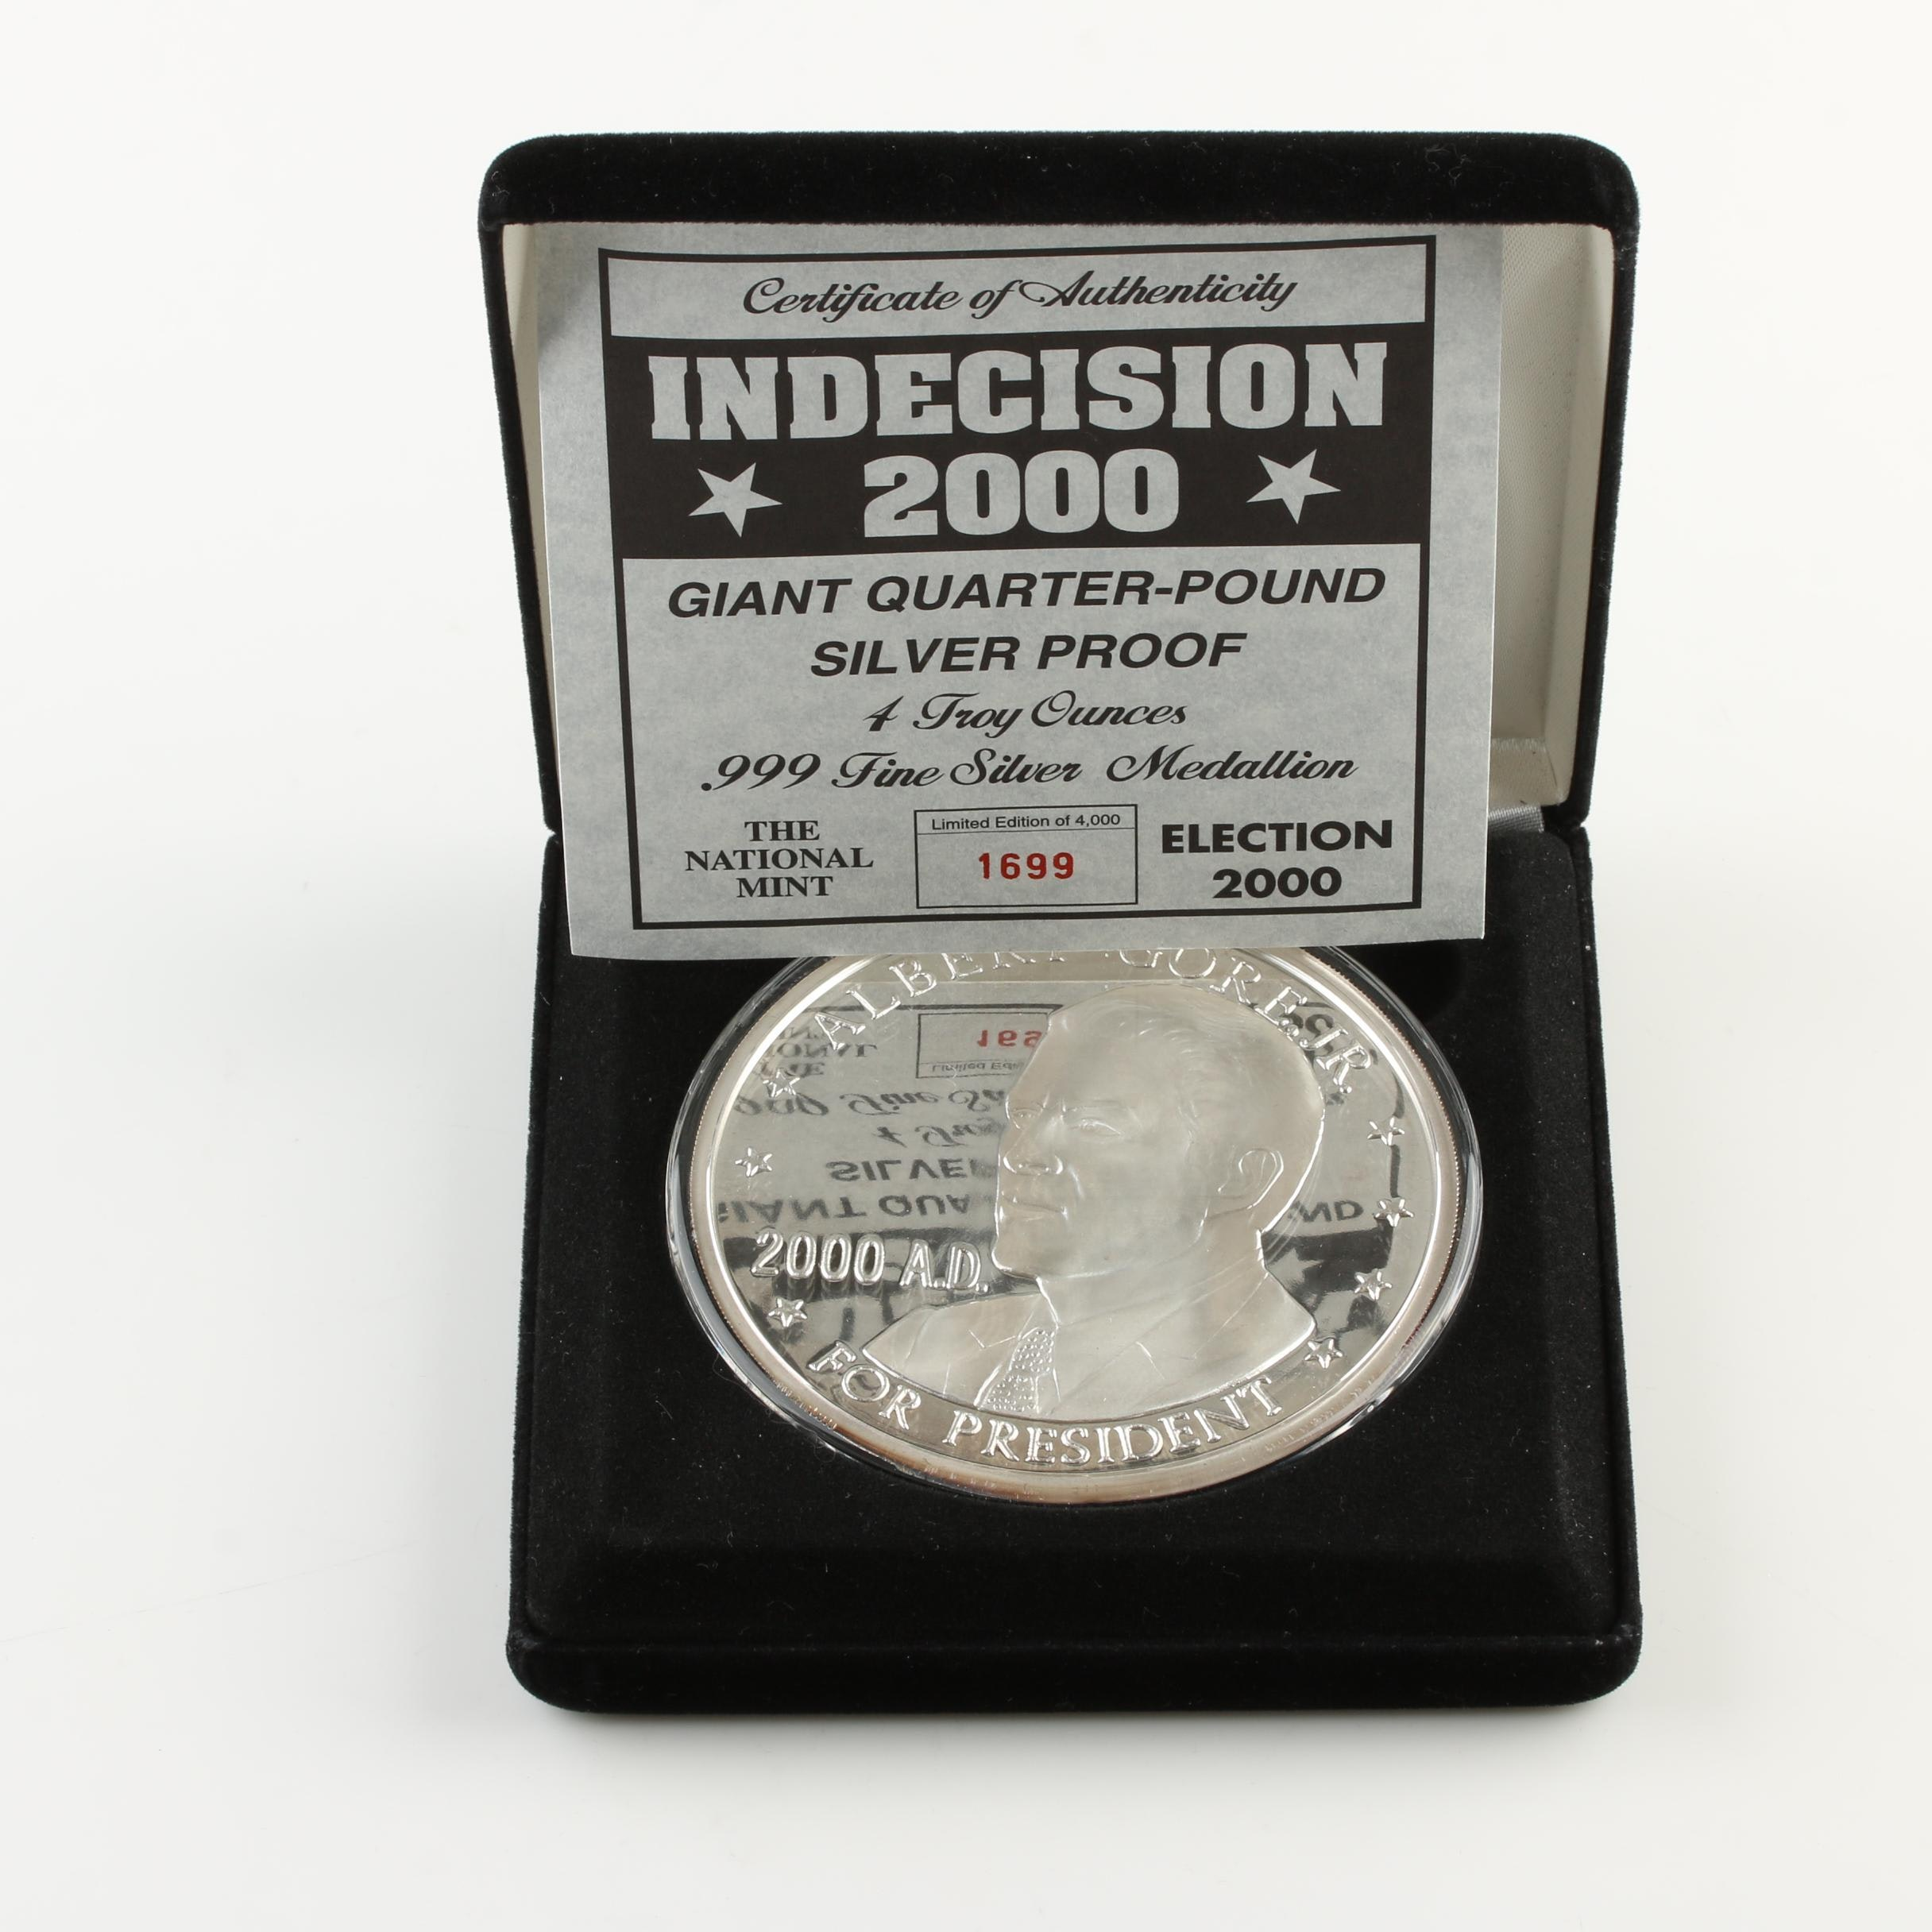 2000 Presidential Election Quarter-Pound Silver Proof Medallion